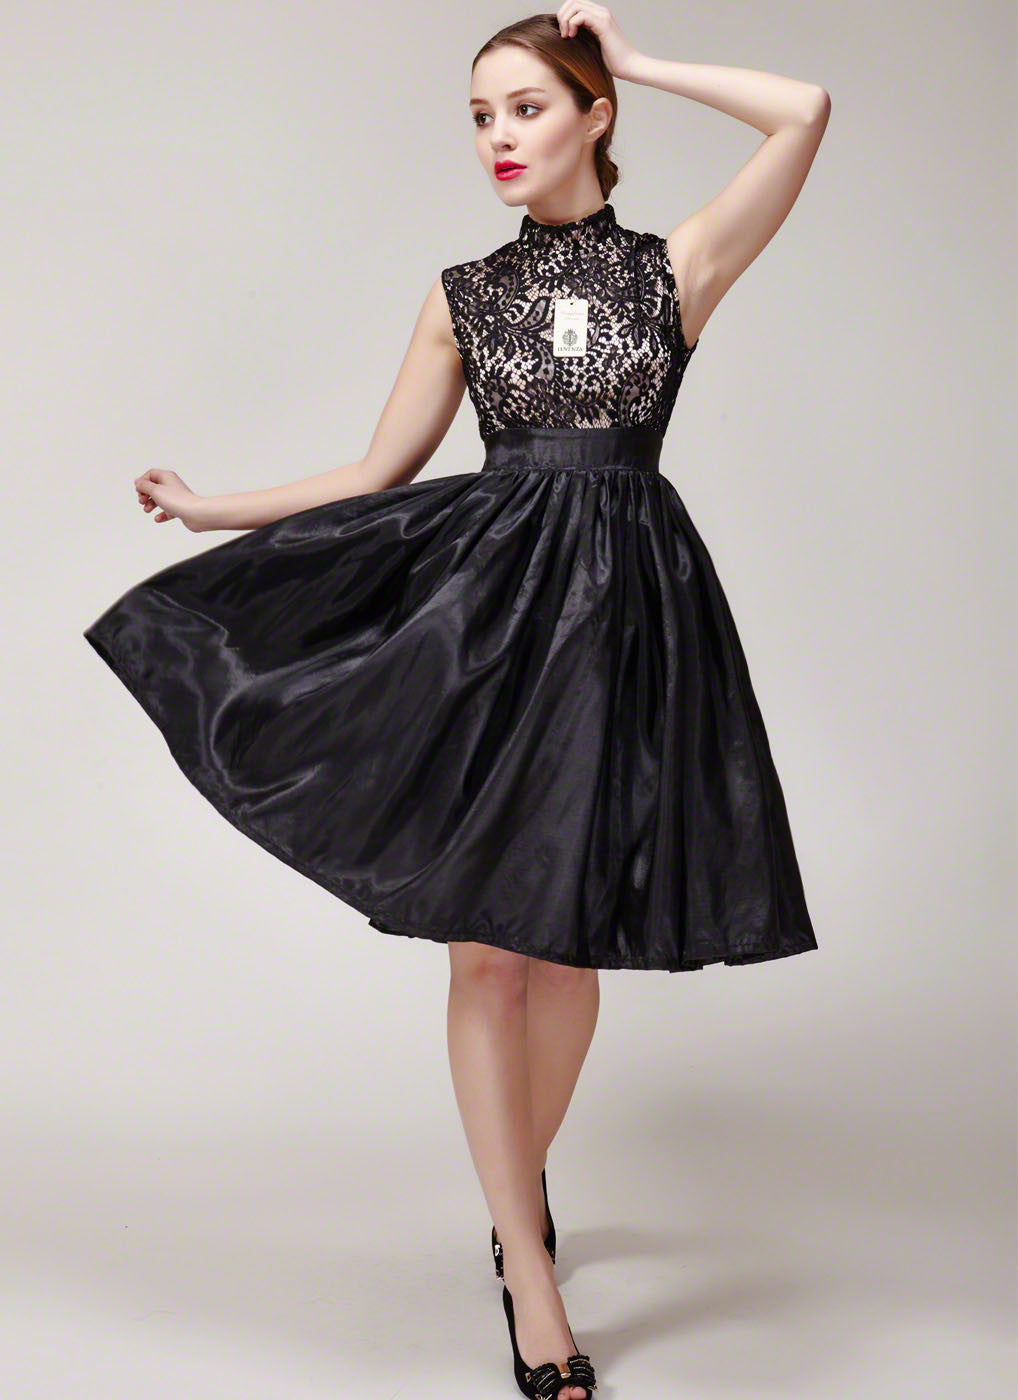 eef333af91fda Black Lace Satin Prom Dress - Fit and flare dress, stand collar, lace mini